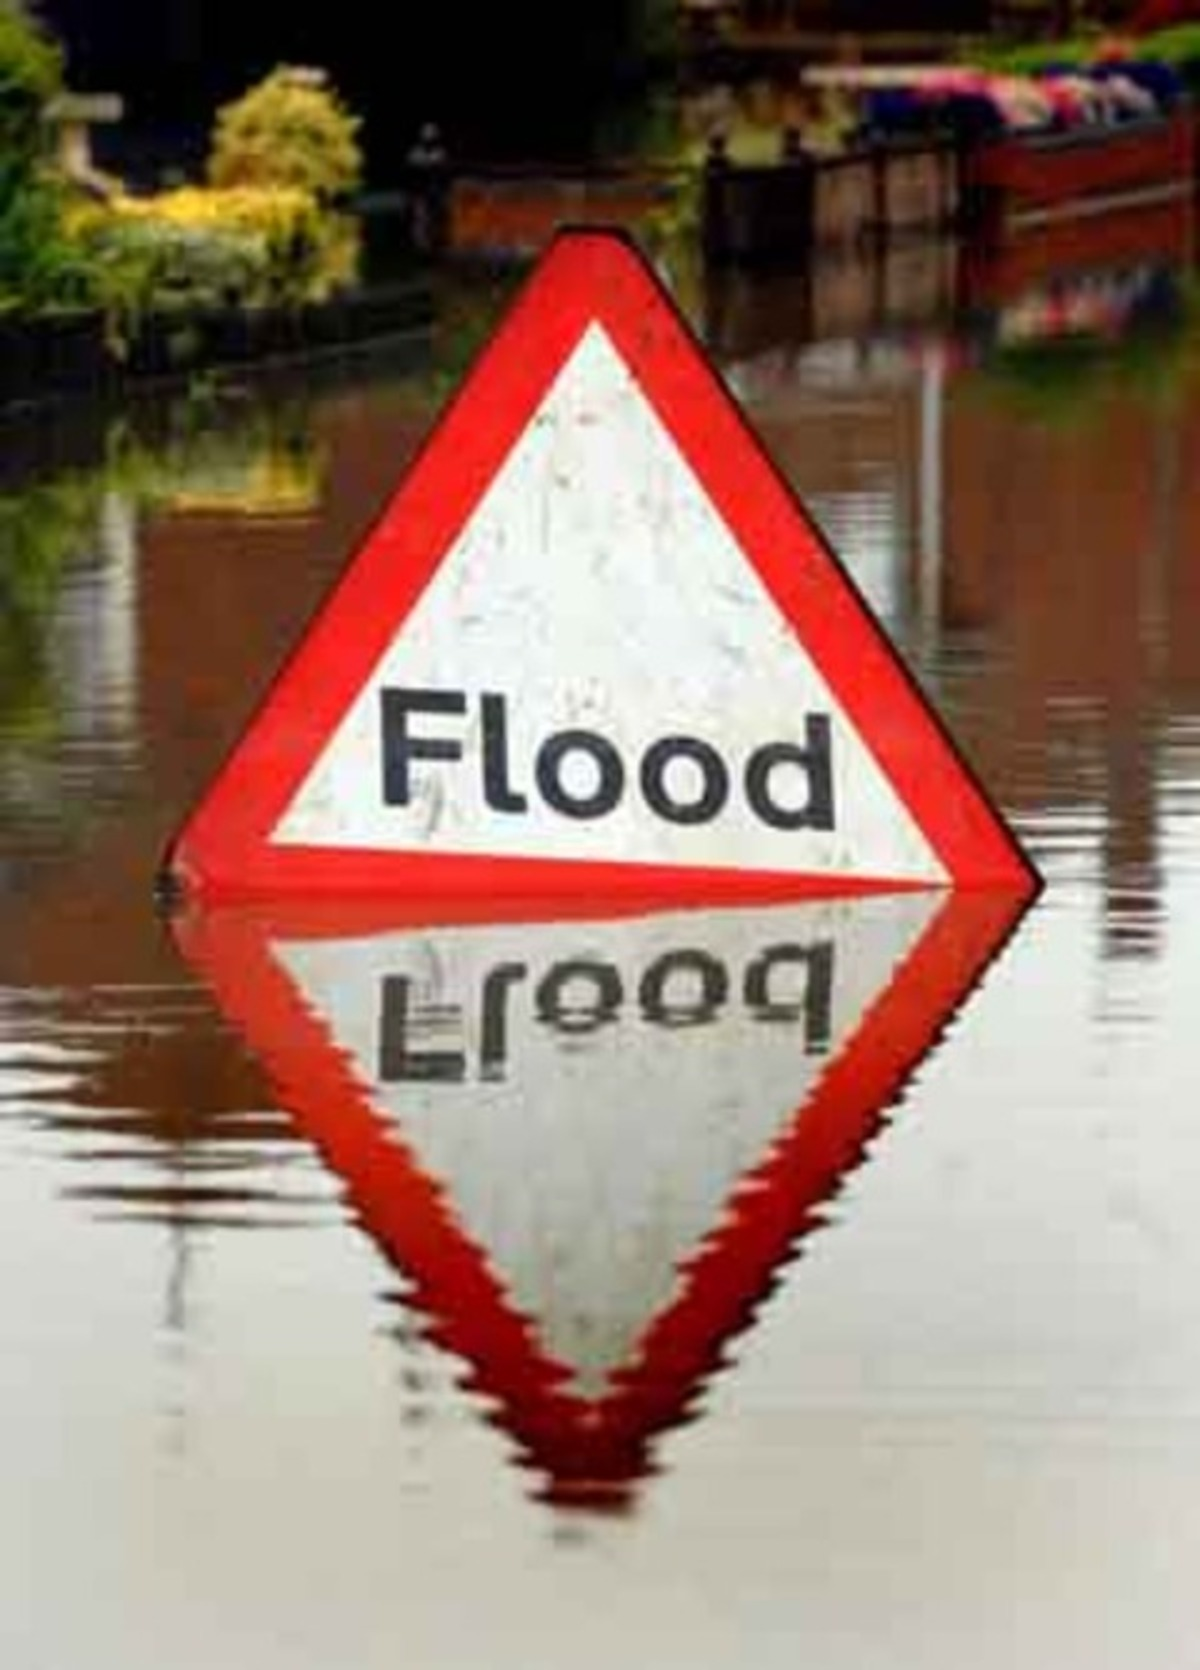 Worcestershire's flood threat looks set to continue